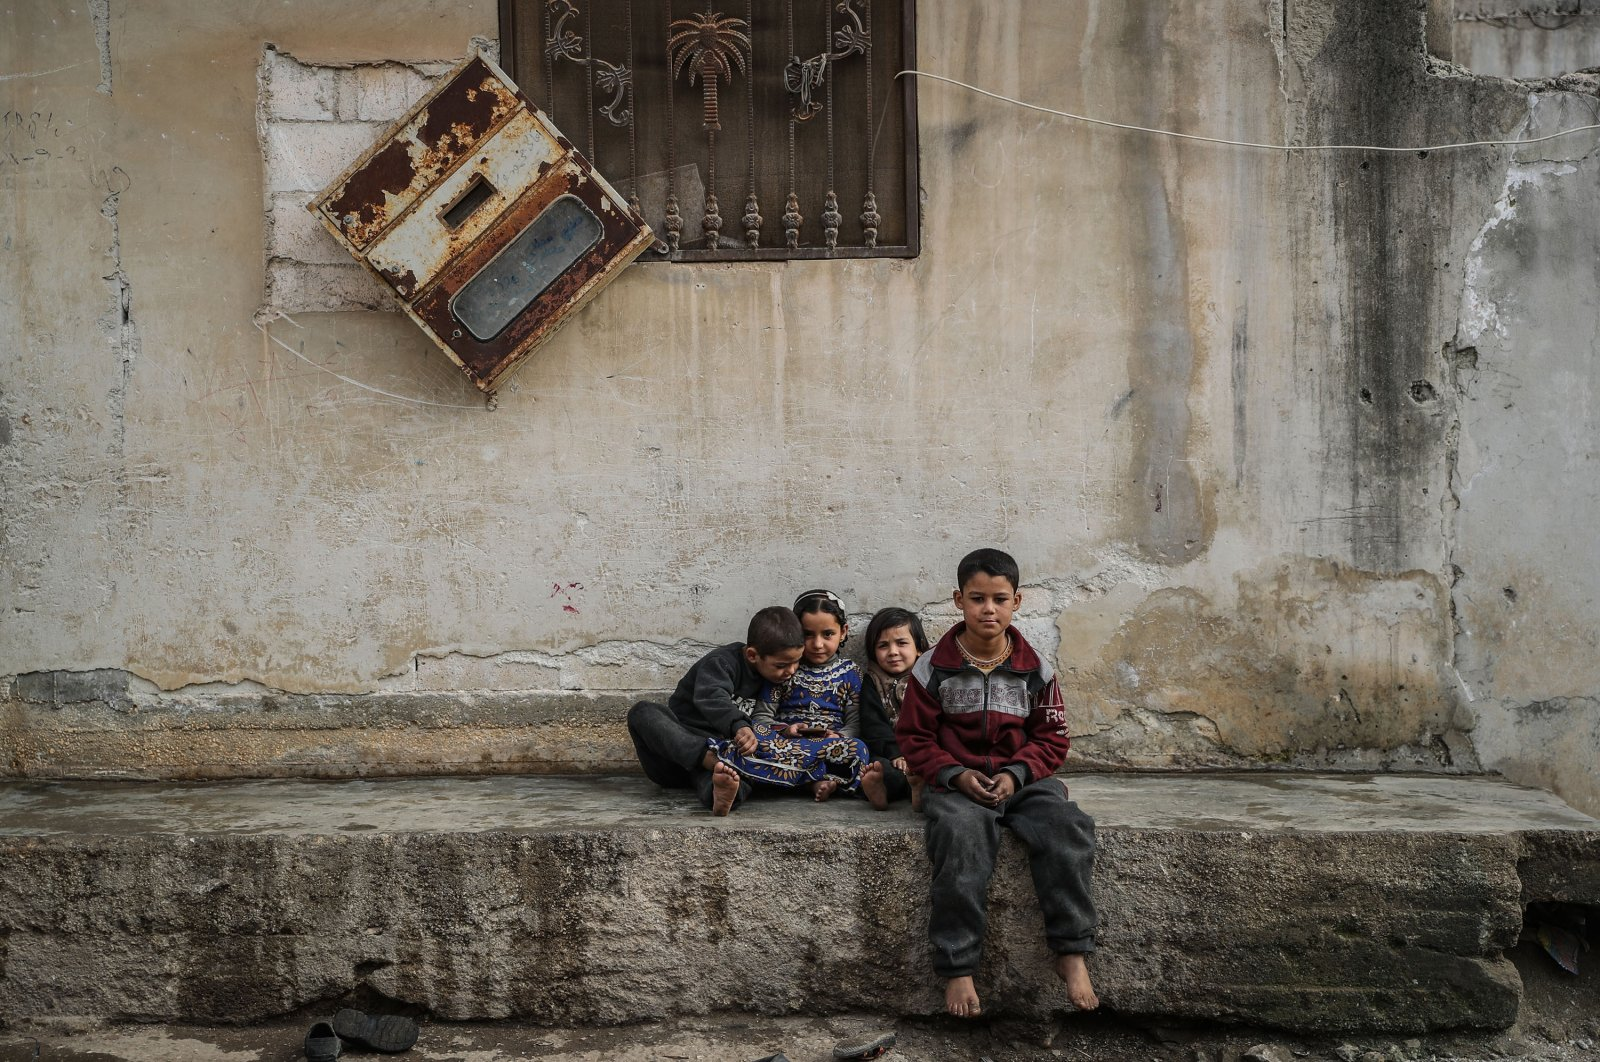 Syrian children sit outside their home in northwestern Idlib's village of Afes after residents displaced by intense Syrian regime bombings start to return, Syria, Jan. 2, 2021. (Getty Images)